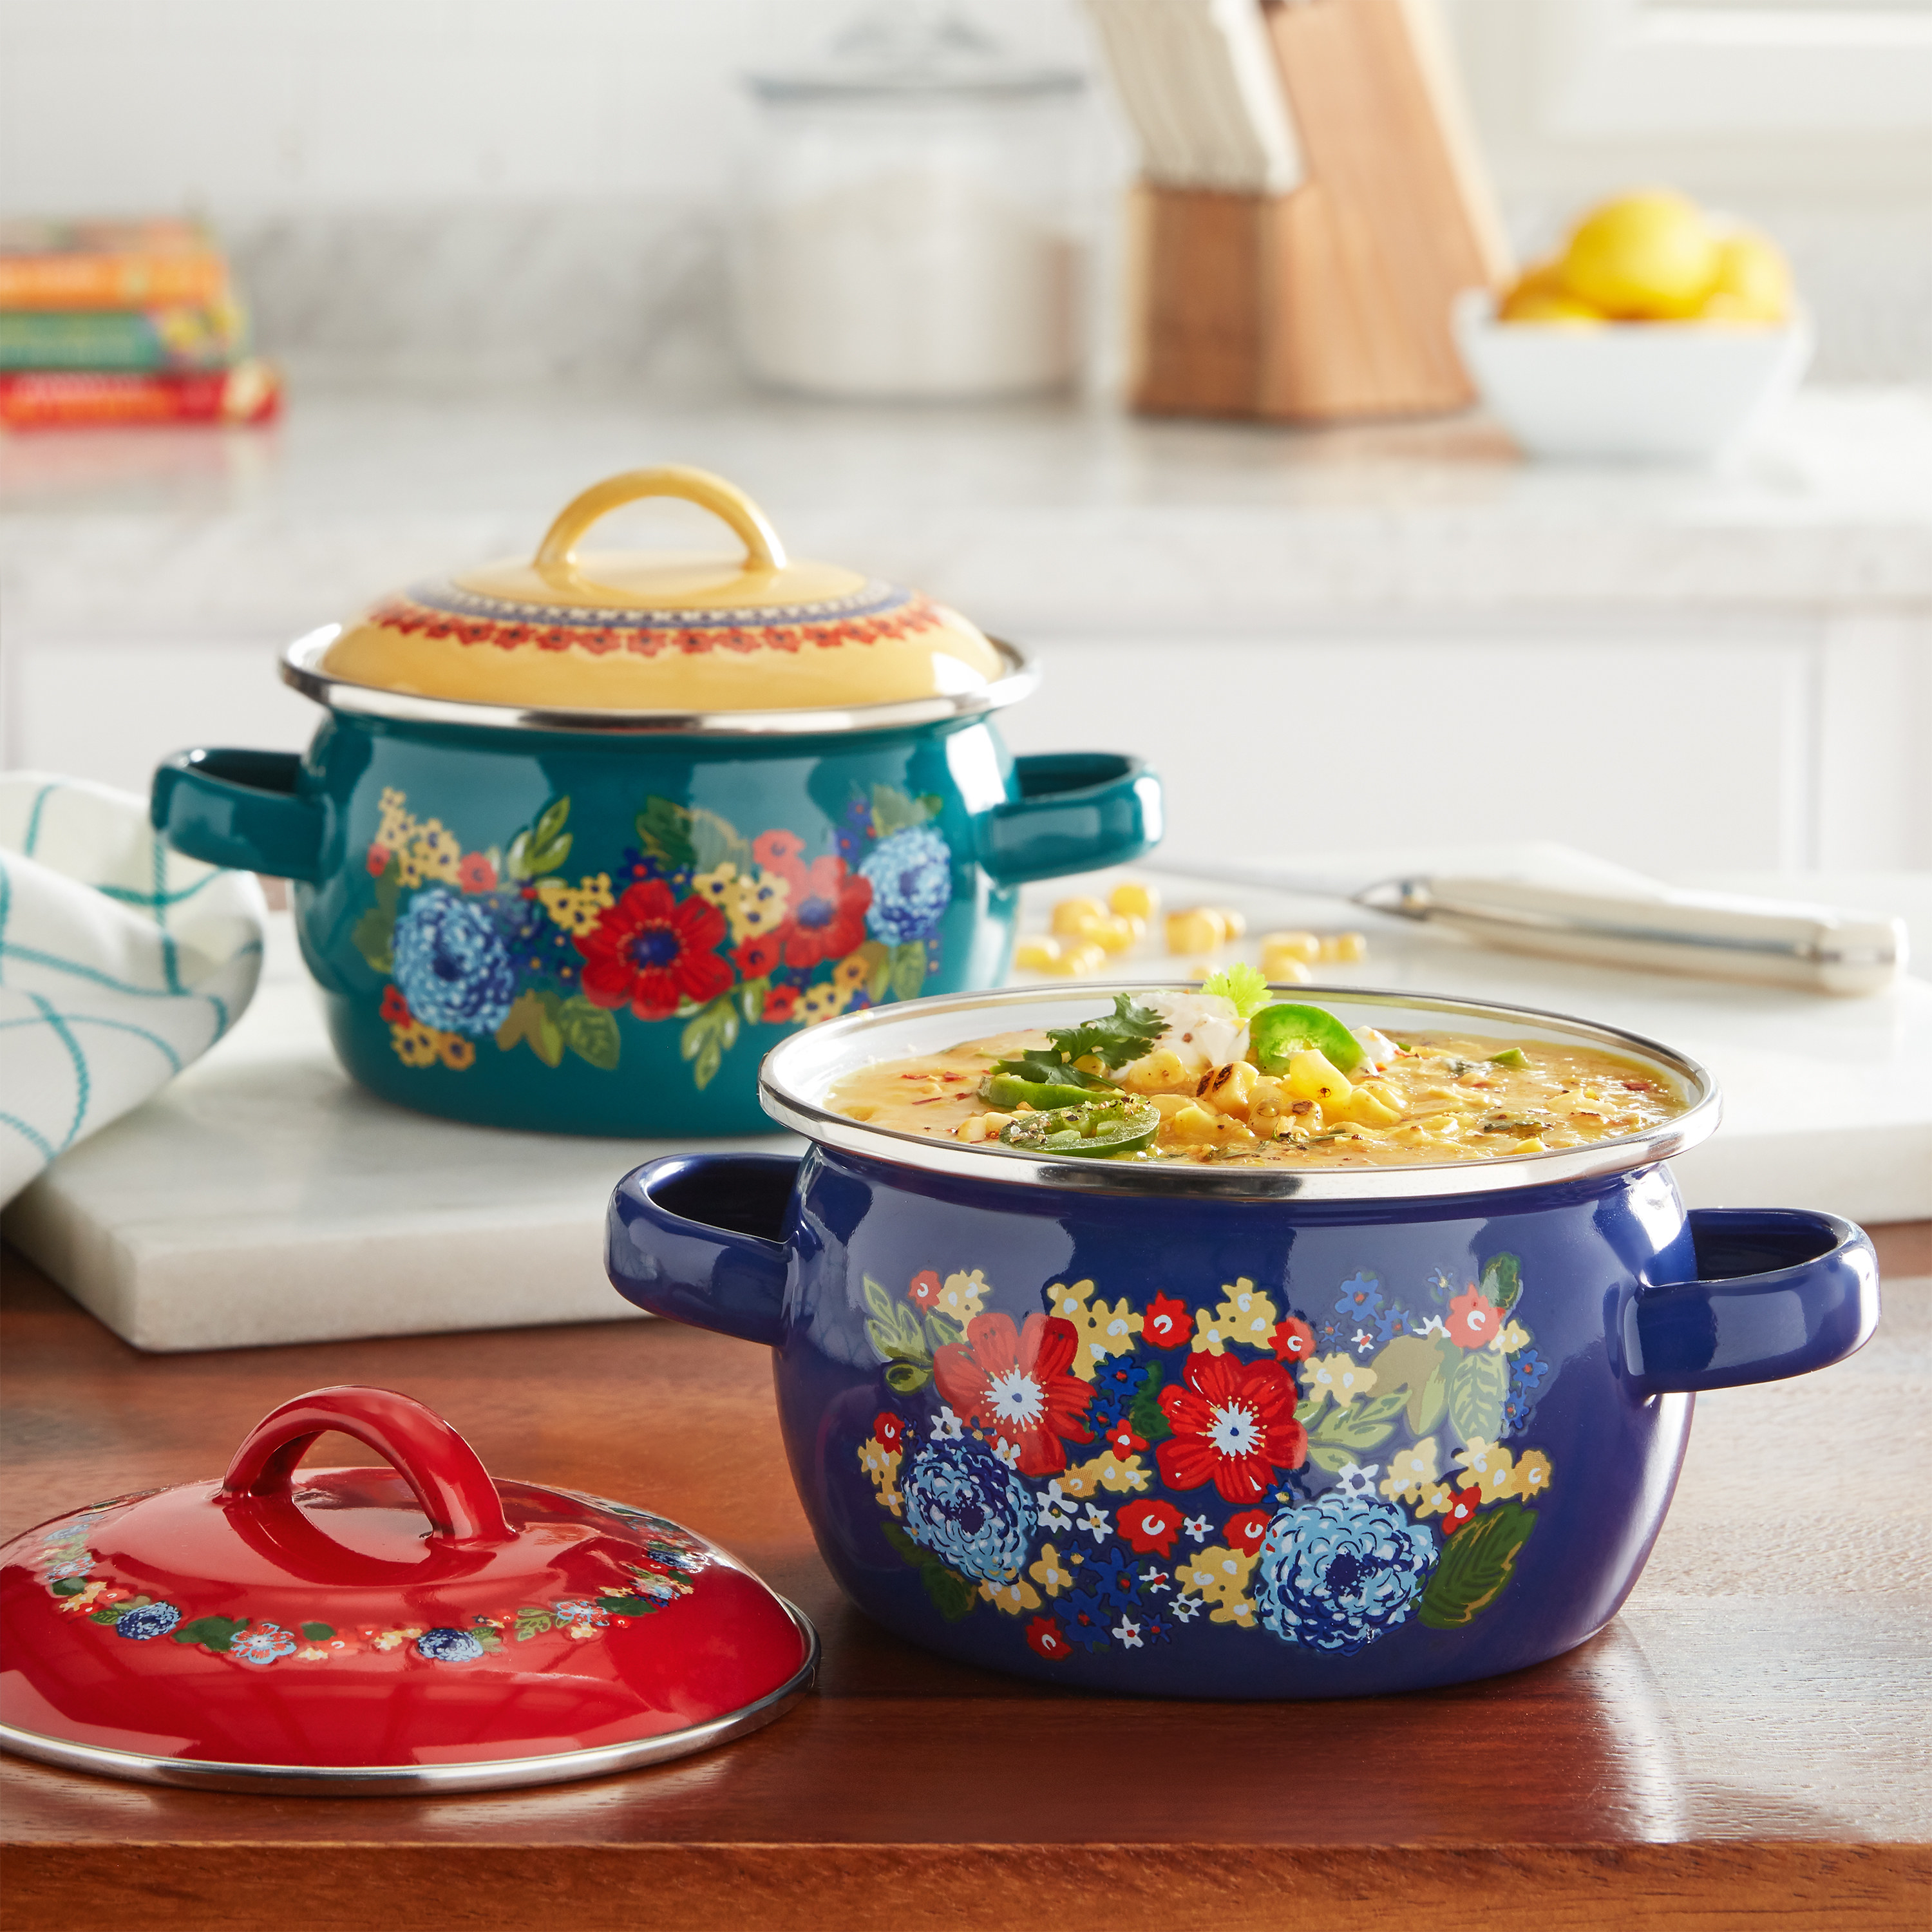 The floral-printed colorful Dutch ovens